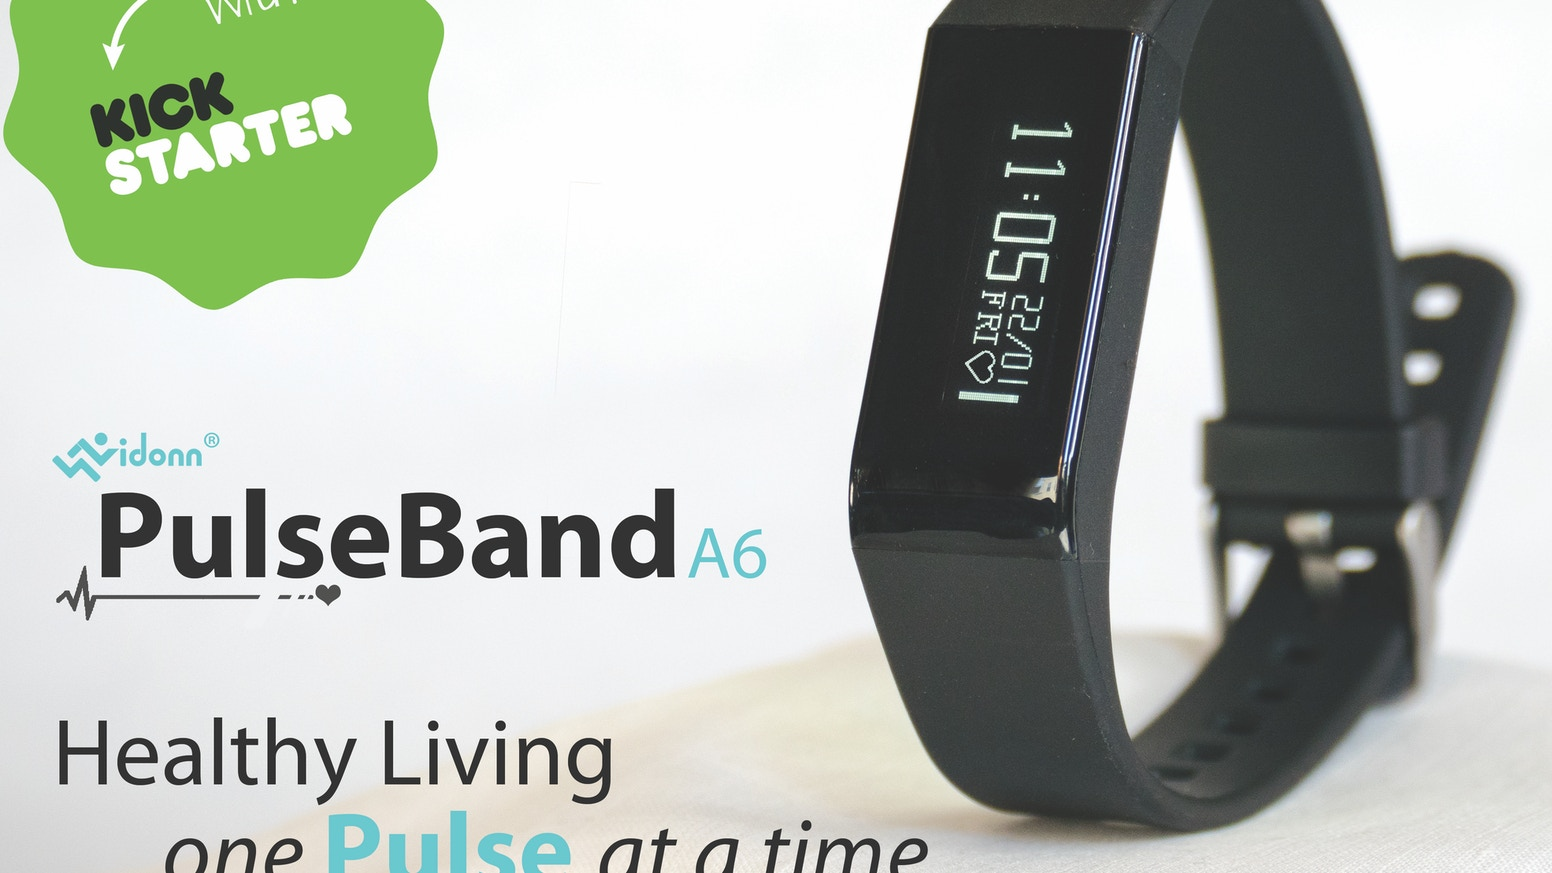 PulseBand A6, the ultimate smart band for an affordable price. Healthy Living Now, One Pulse At A Time. Missed our Kickstarter campaign? Head over to Pre-Order Page to get yours! Thanks to all of our Kickstarter backers for making it happen!